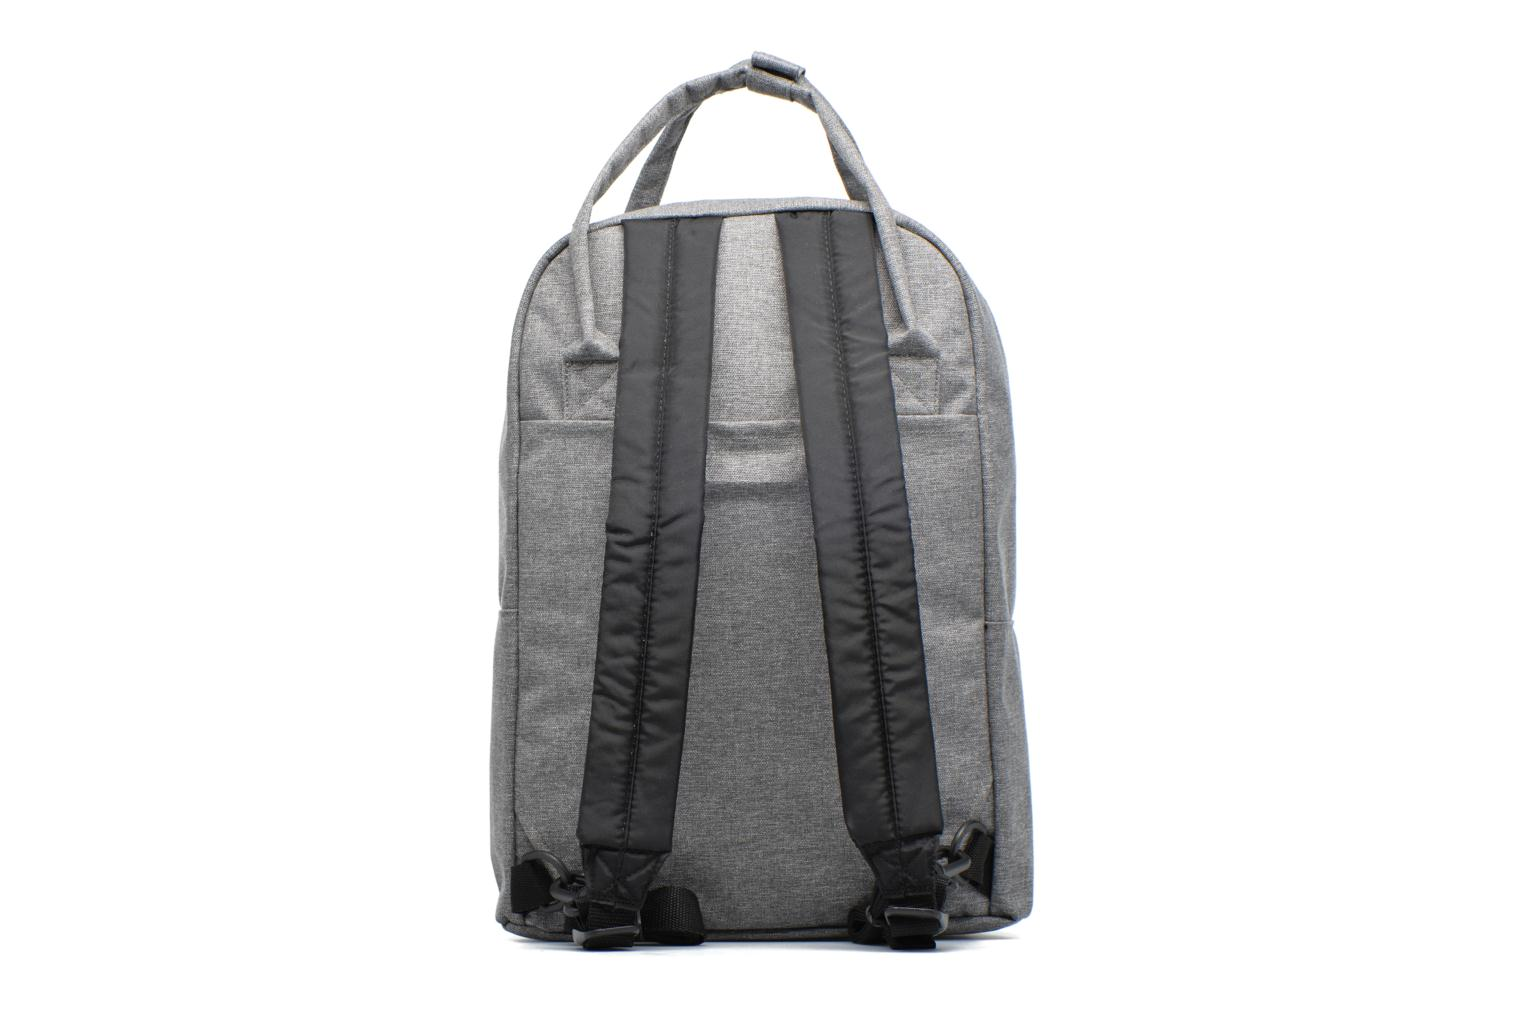 PADDED SHOP'R Sac à dos toile Sunday Grey